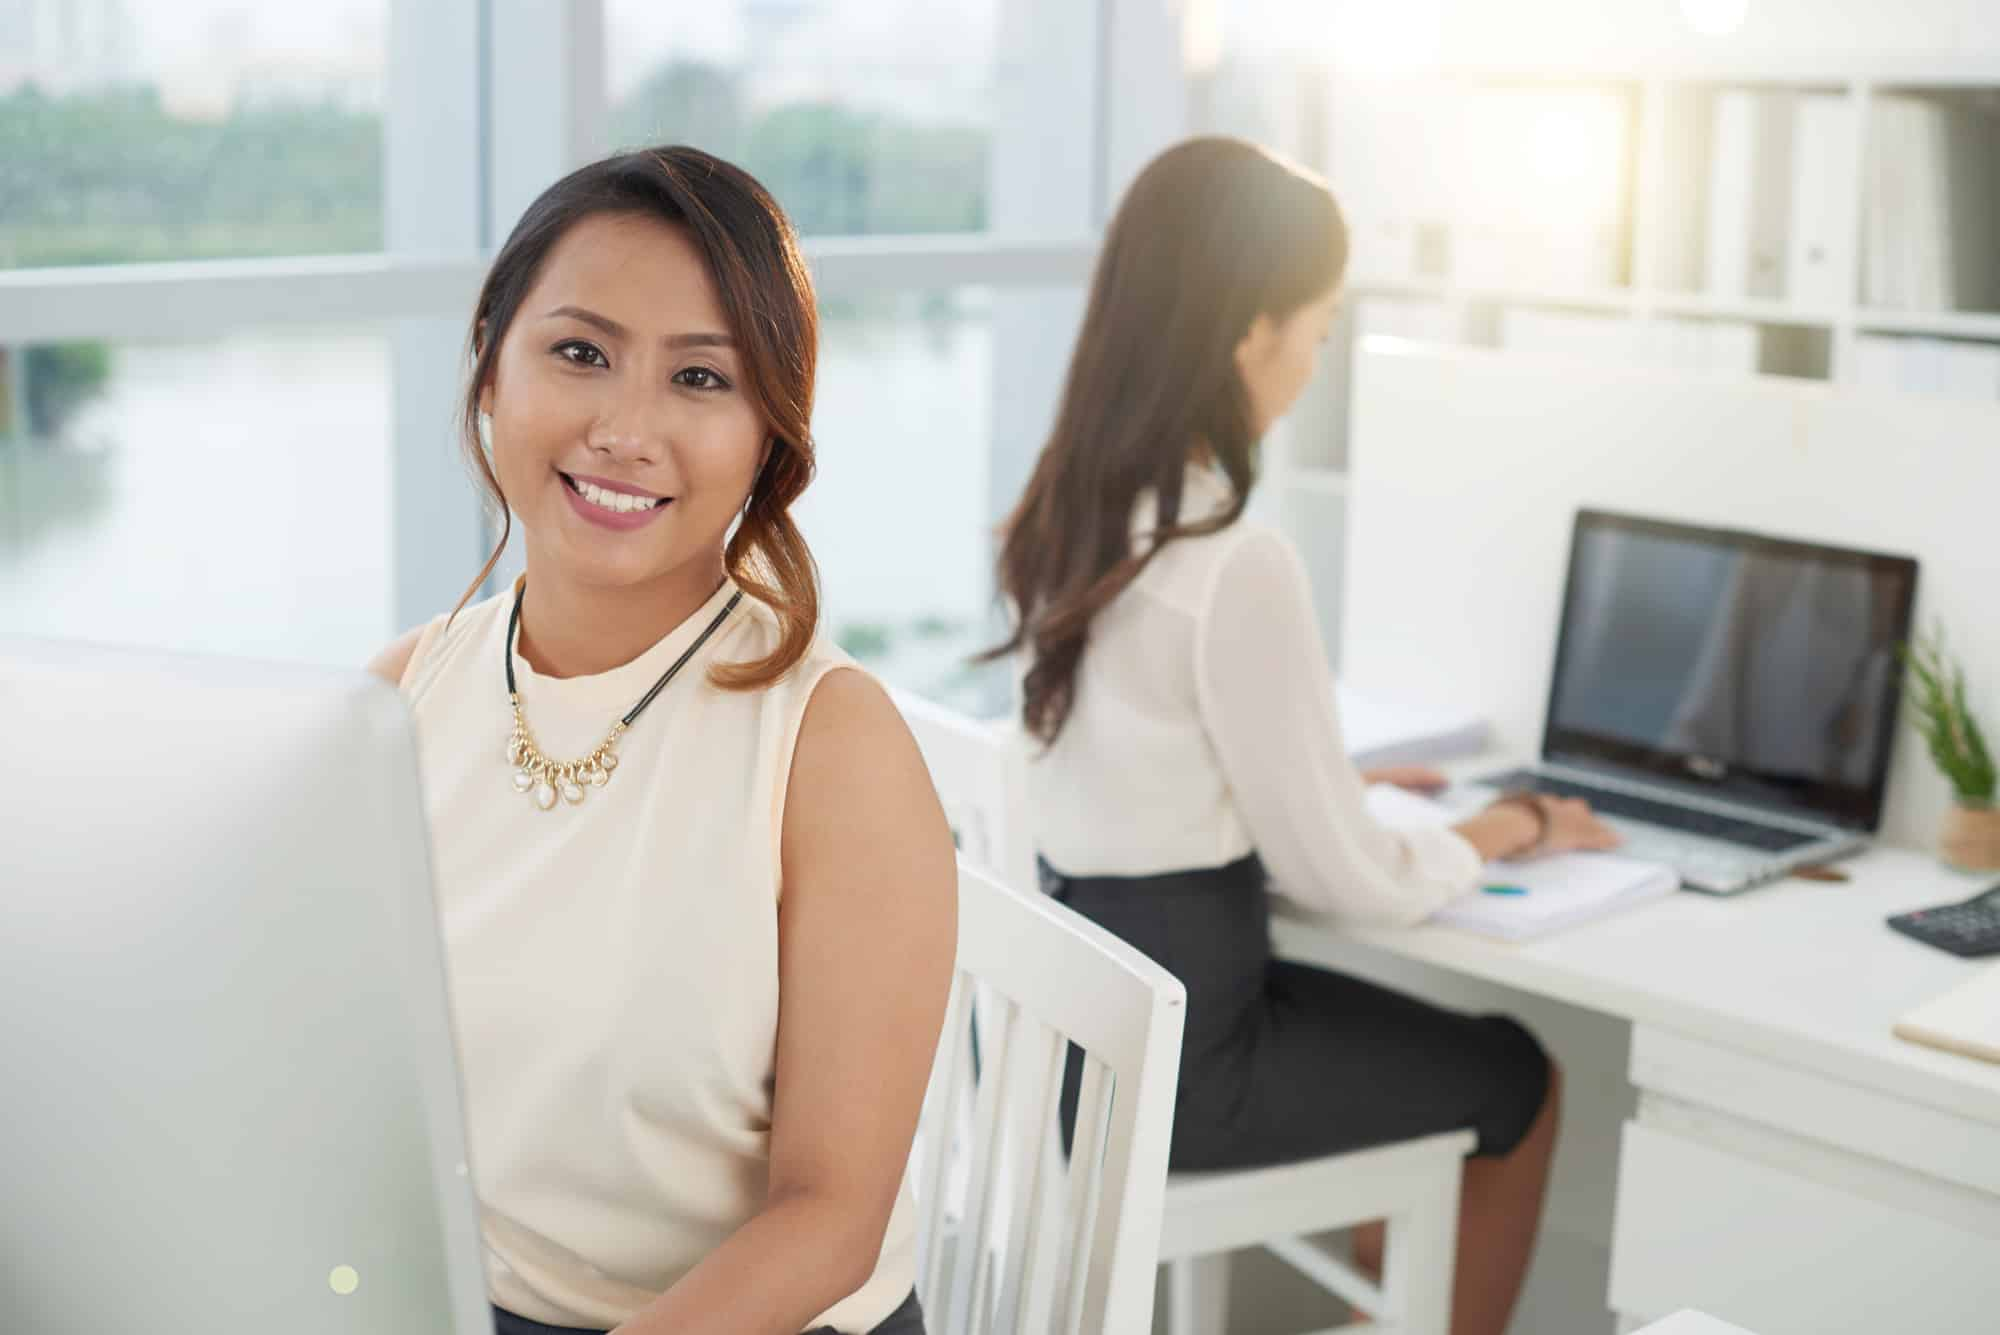 Smiling businesswoman sitting at her workplace and work